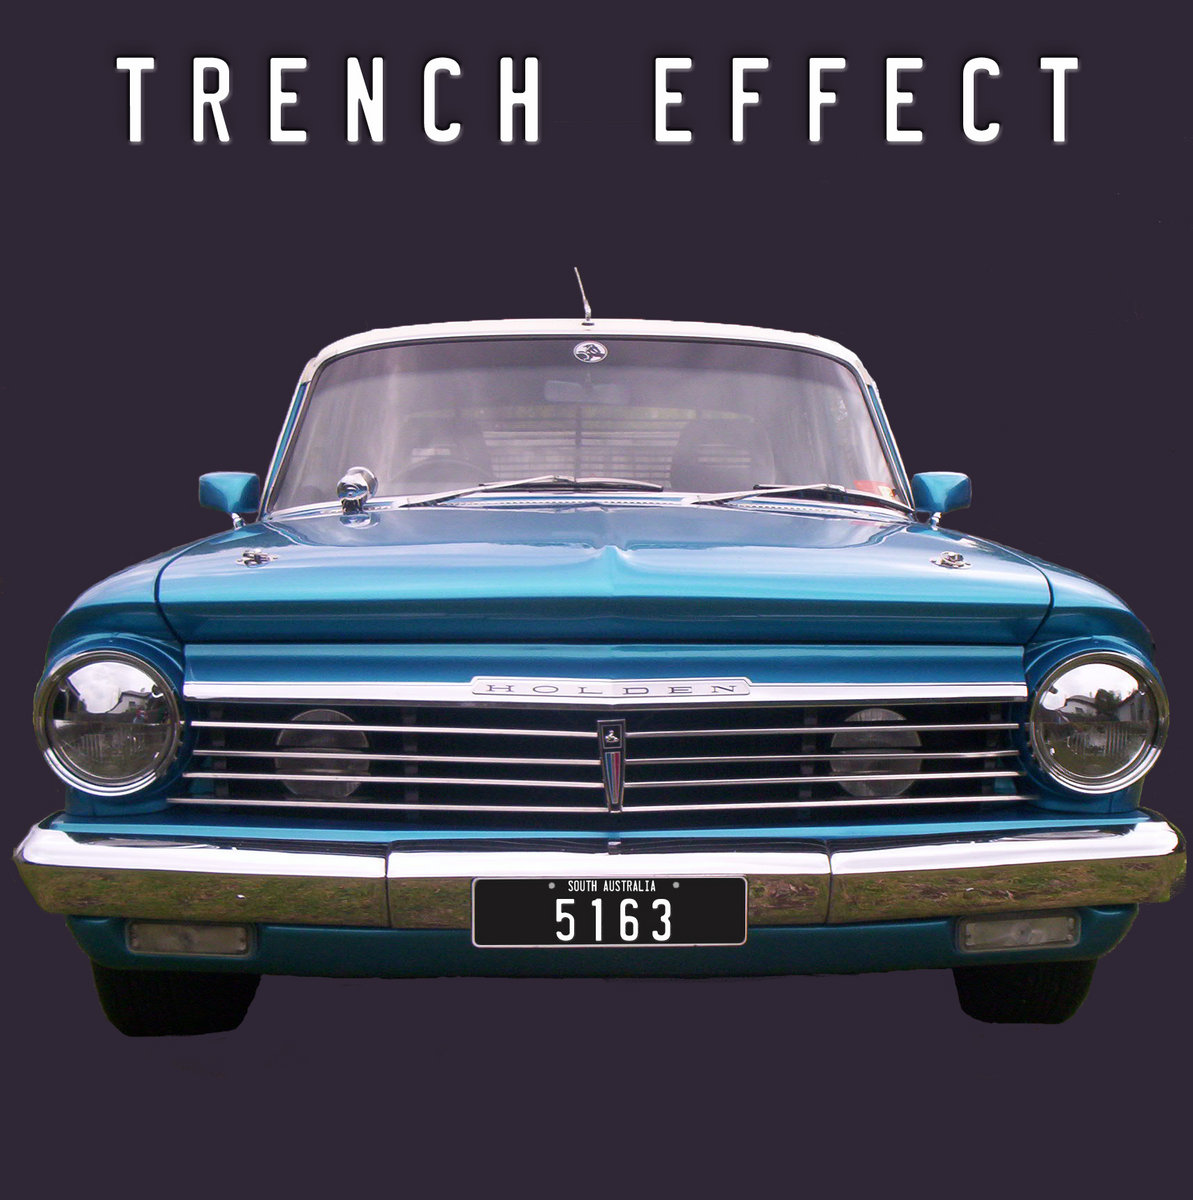 Trench effect by trench effect buycottarizona